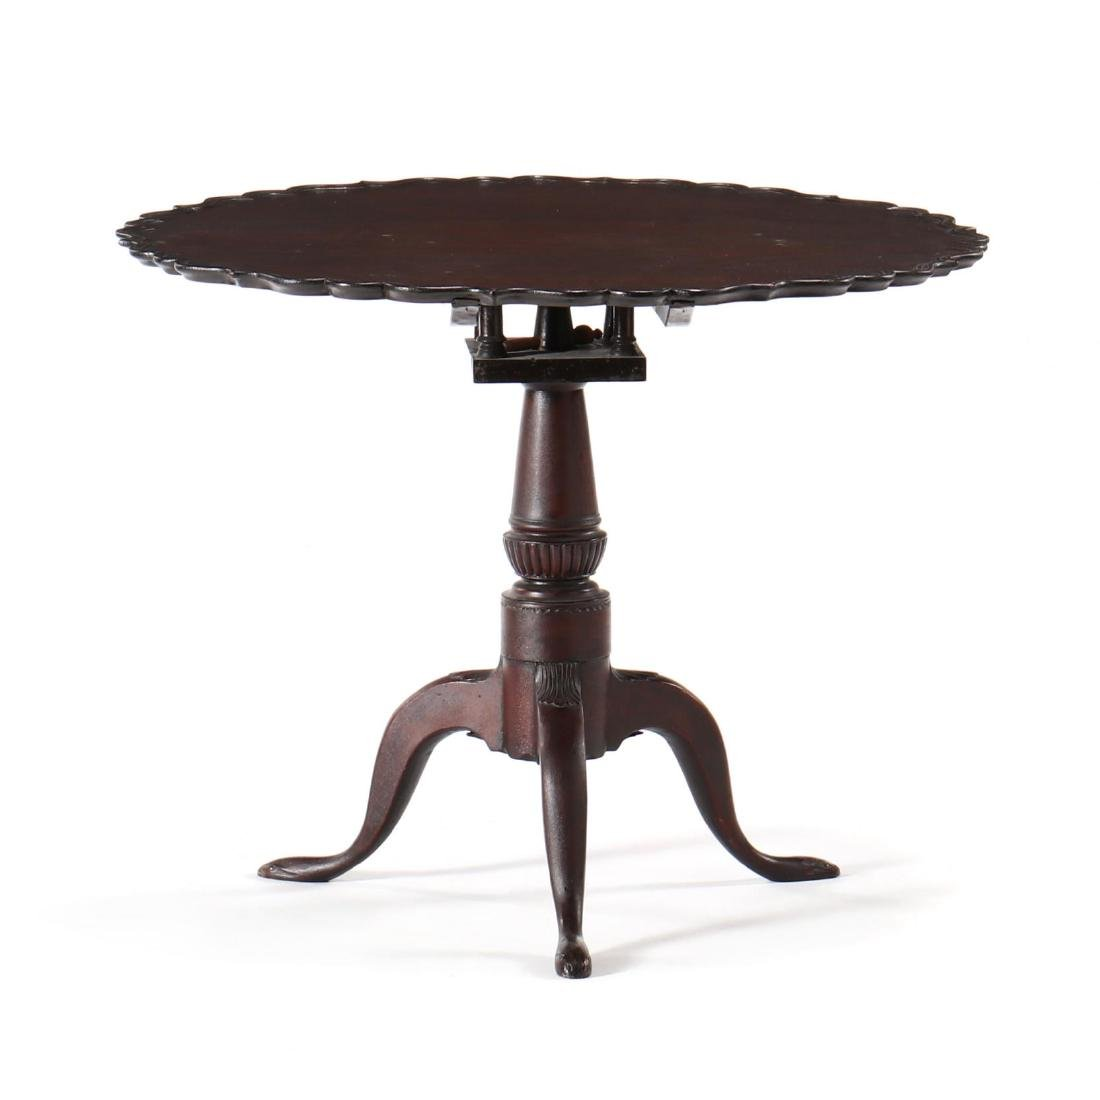 New England Queen Anne Tilt Top Tea Table